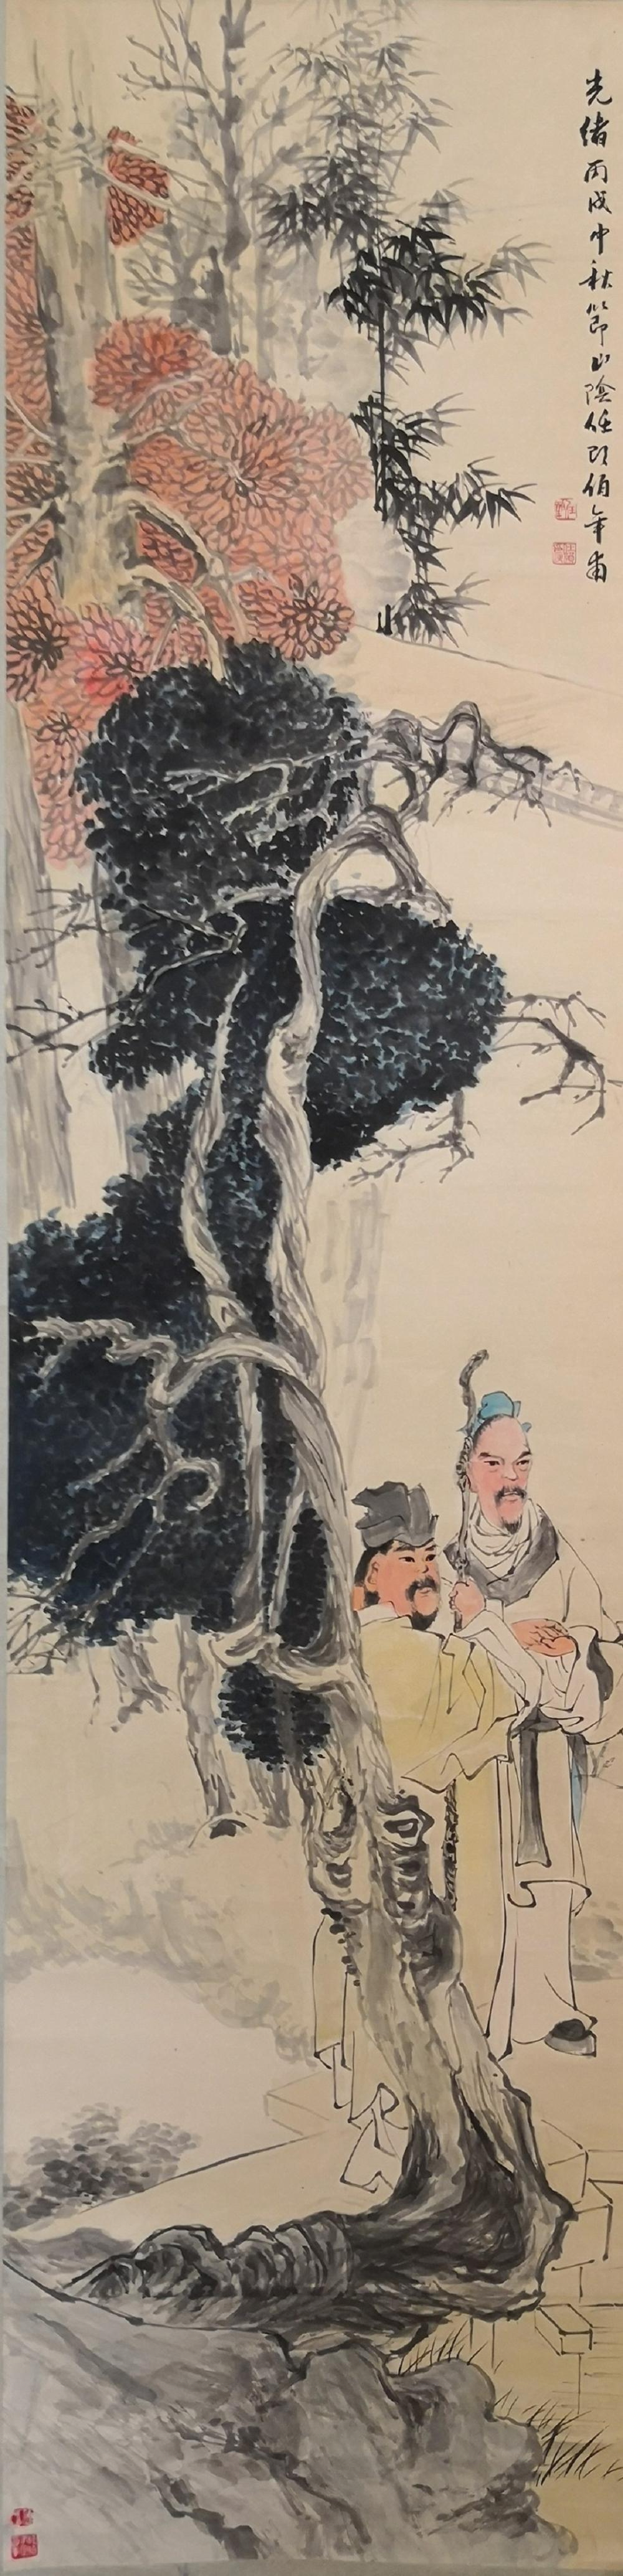 A CHINESE PAINTING BY REN BONIAN